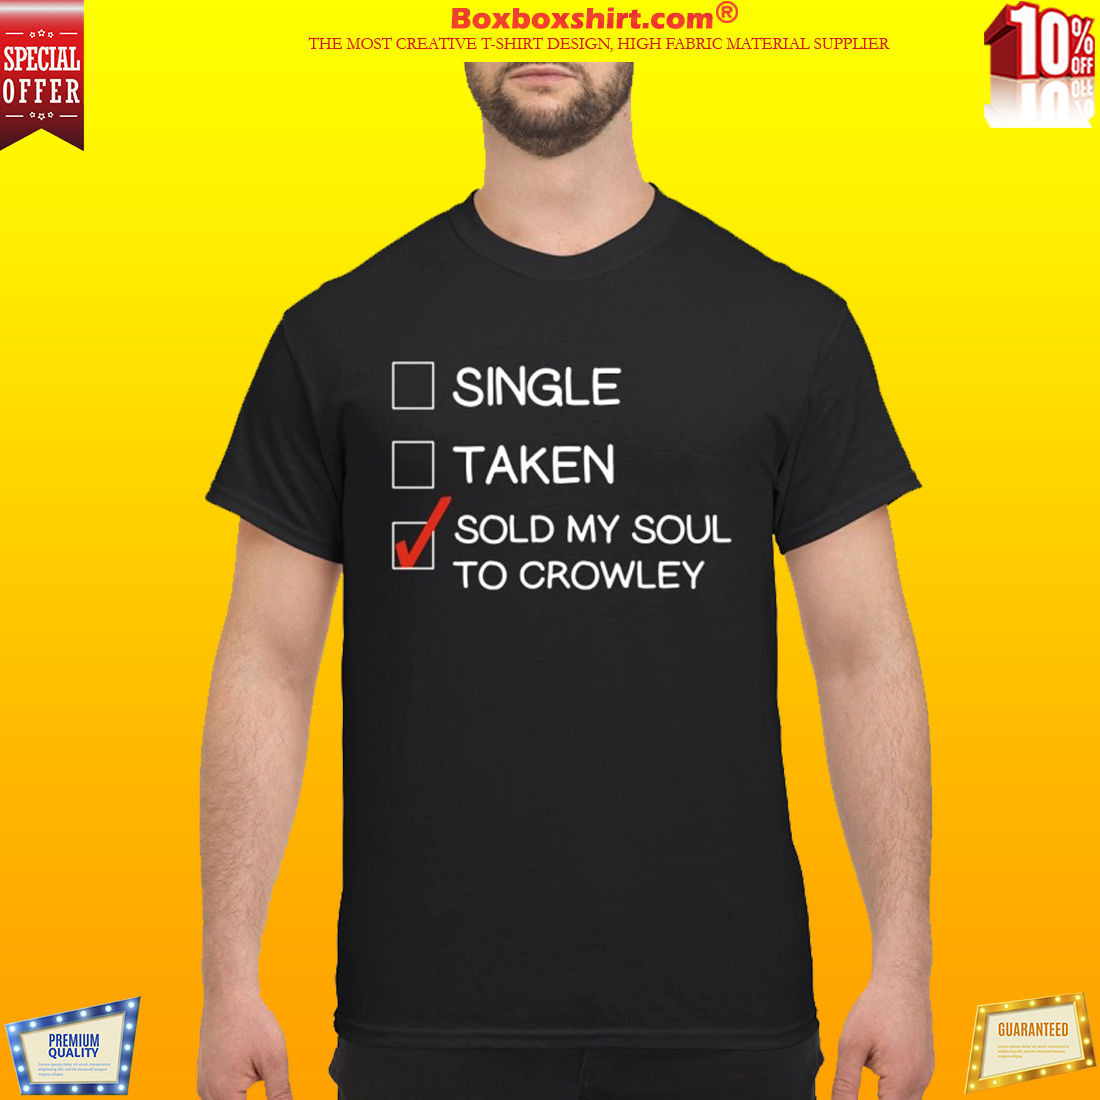 Single taken sold my soul to crowley and classic shirt